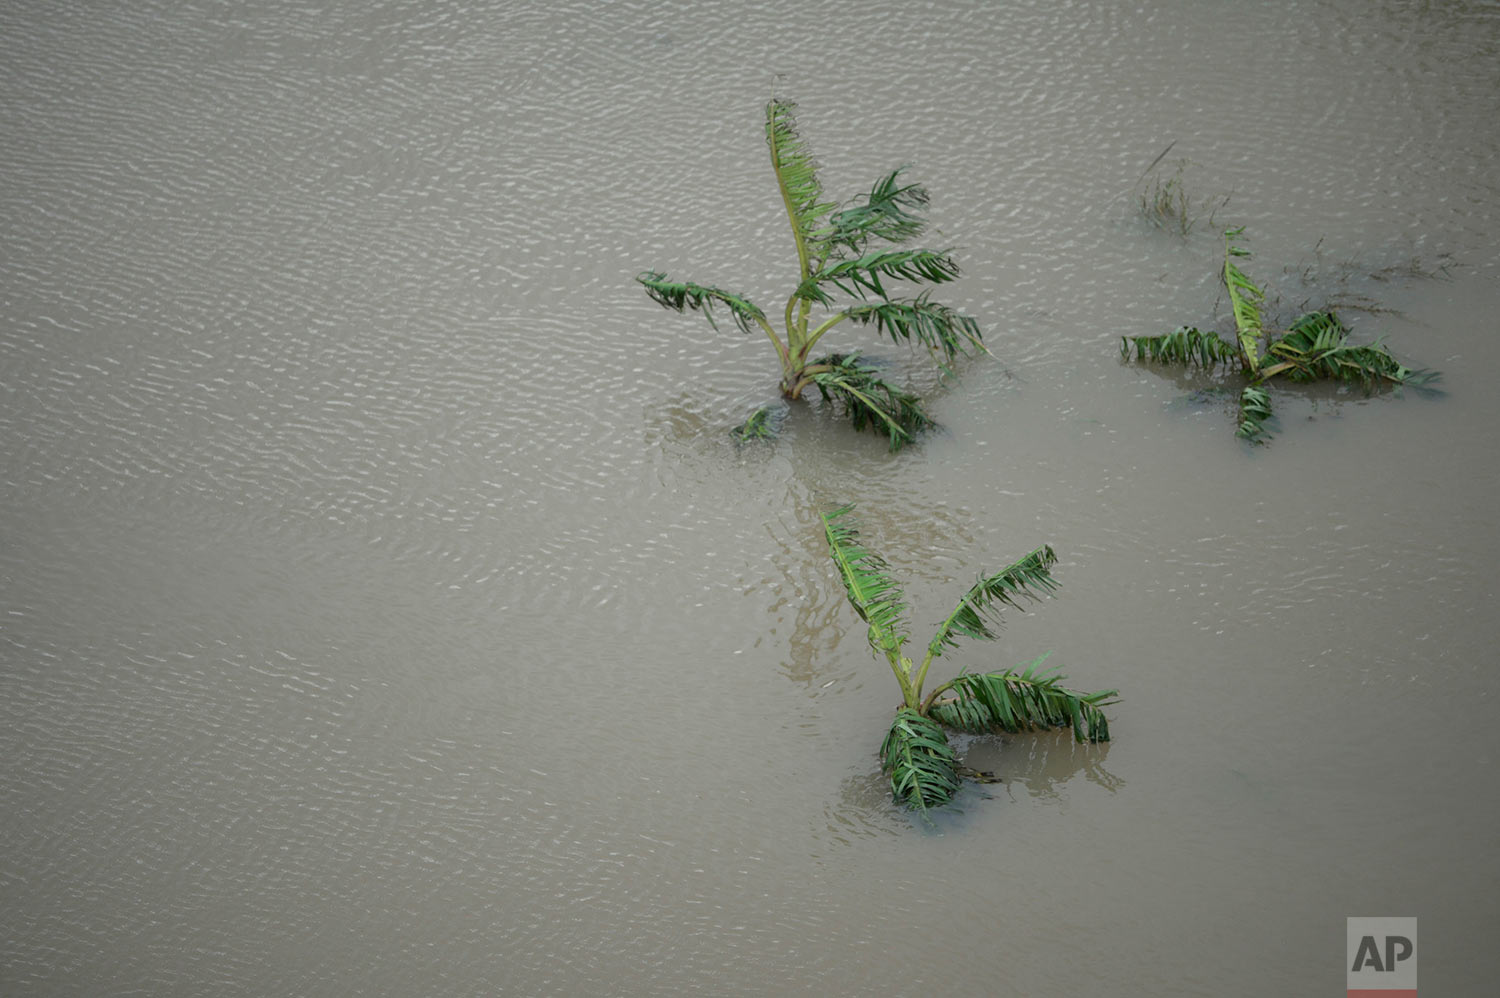 A plantain field stands under water after the passing of Hurricane Maria in Yabucoa, Puerto Rico, Thursday, September 21, 2017. (AP Photo/Carlos Giusti)